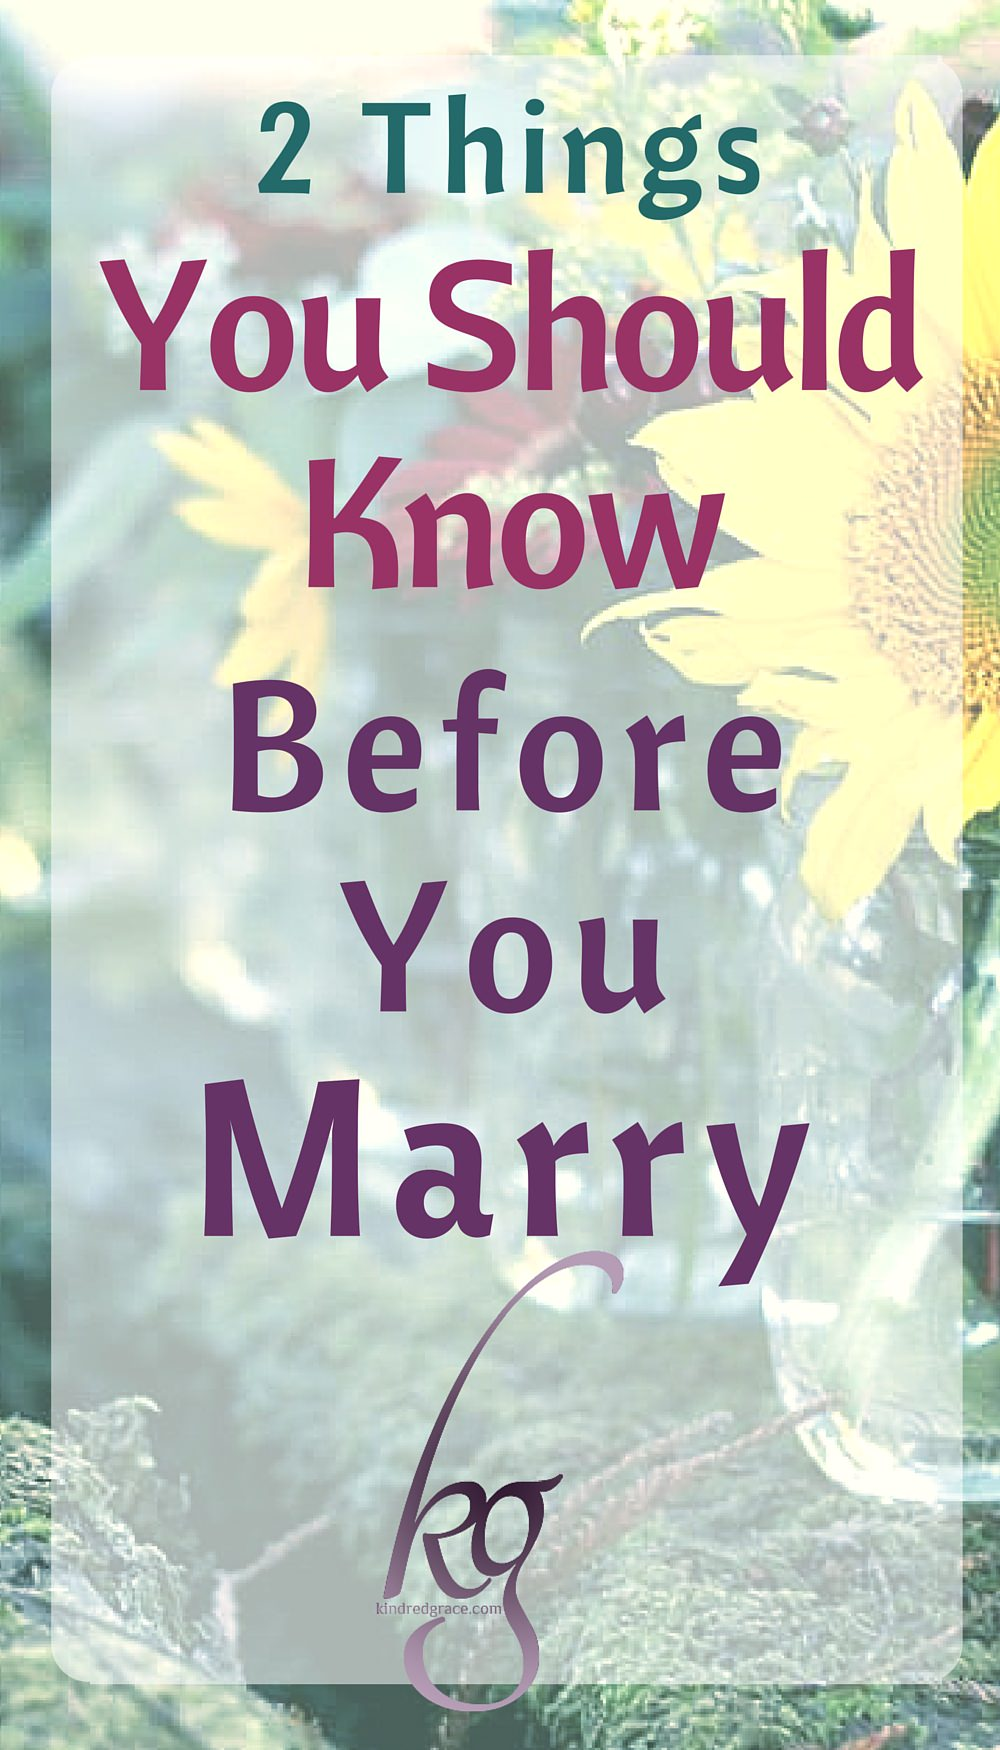 There is a lot of natural maturing that takes place from ten to twenty years old, of course, but there are two things I am purposing to teach my children now before they are old enough to think about marriage. via @KindredGrace